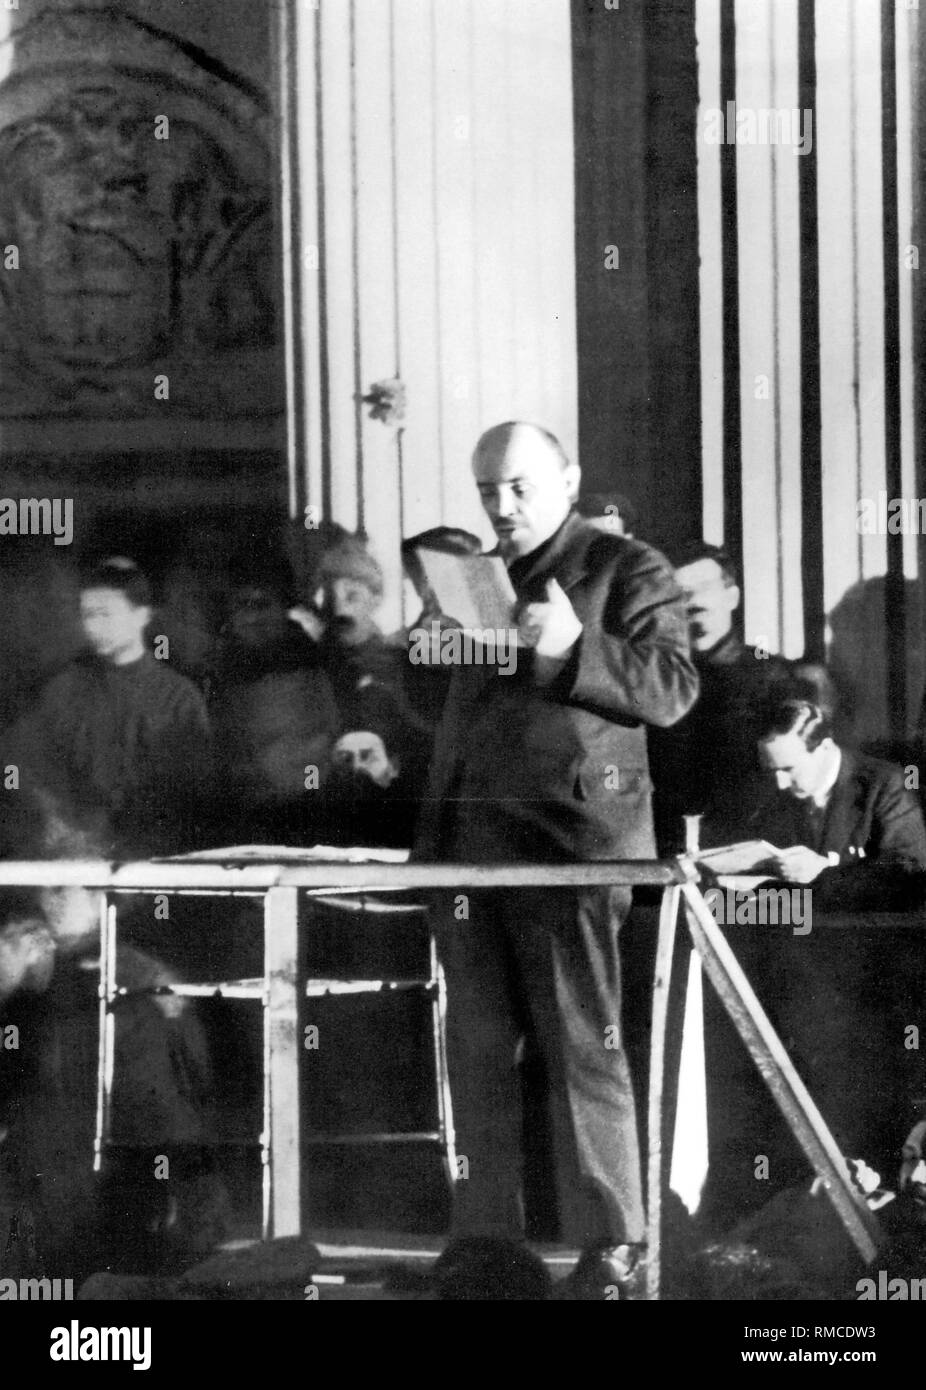 Lenin during a speech at the 10th Congress of the CPSU in the Sverdlov Hall of the Kremlin. - Stock Image